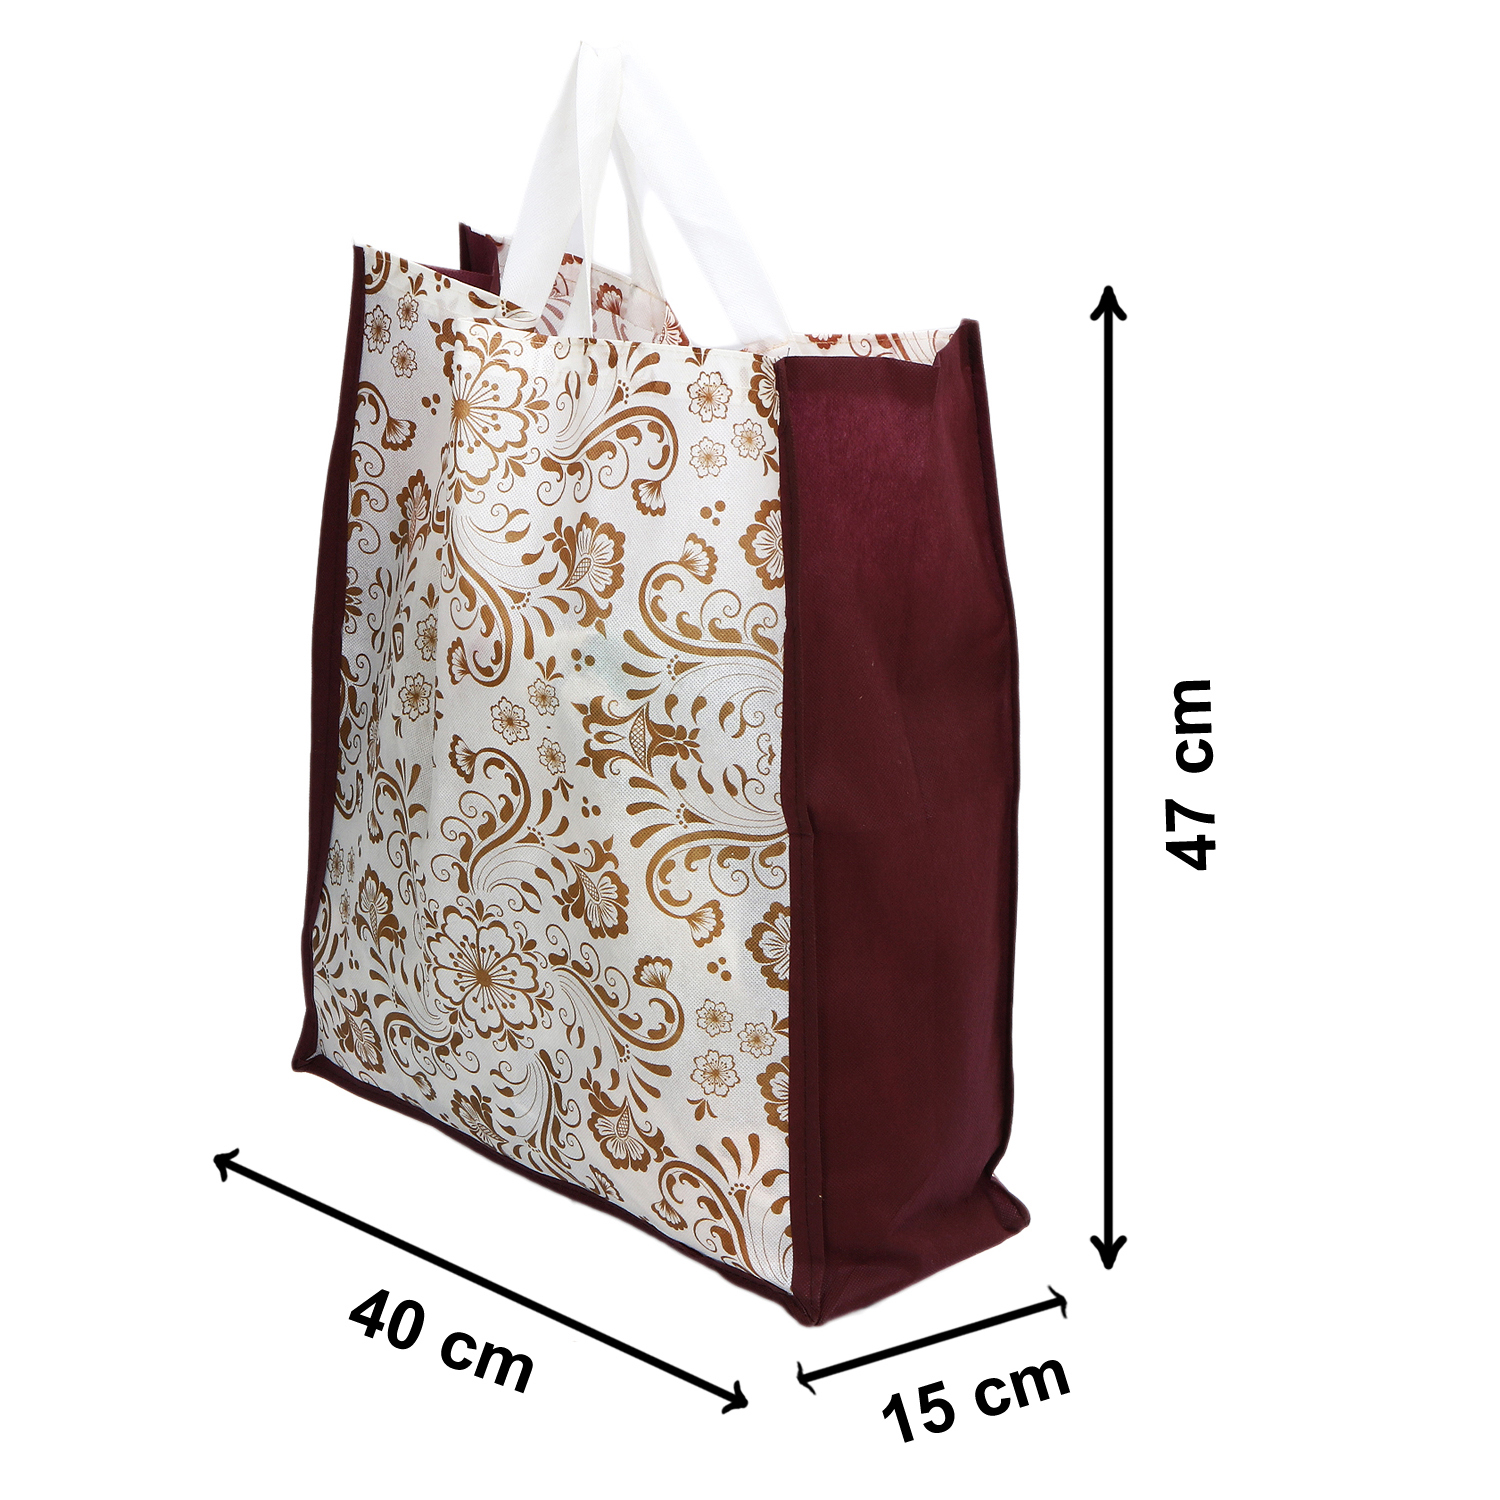 Kuber Industries 48 Pieces Non Woven Eco-Friendly Reusable Multipurpose Shopping Carry Bags (Maroon) - CTKTC30837